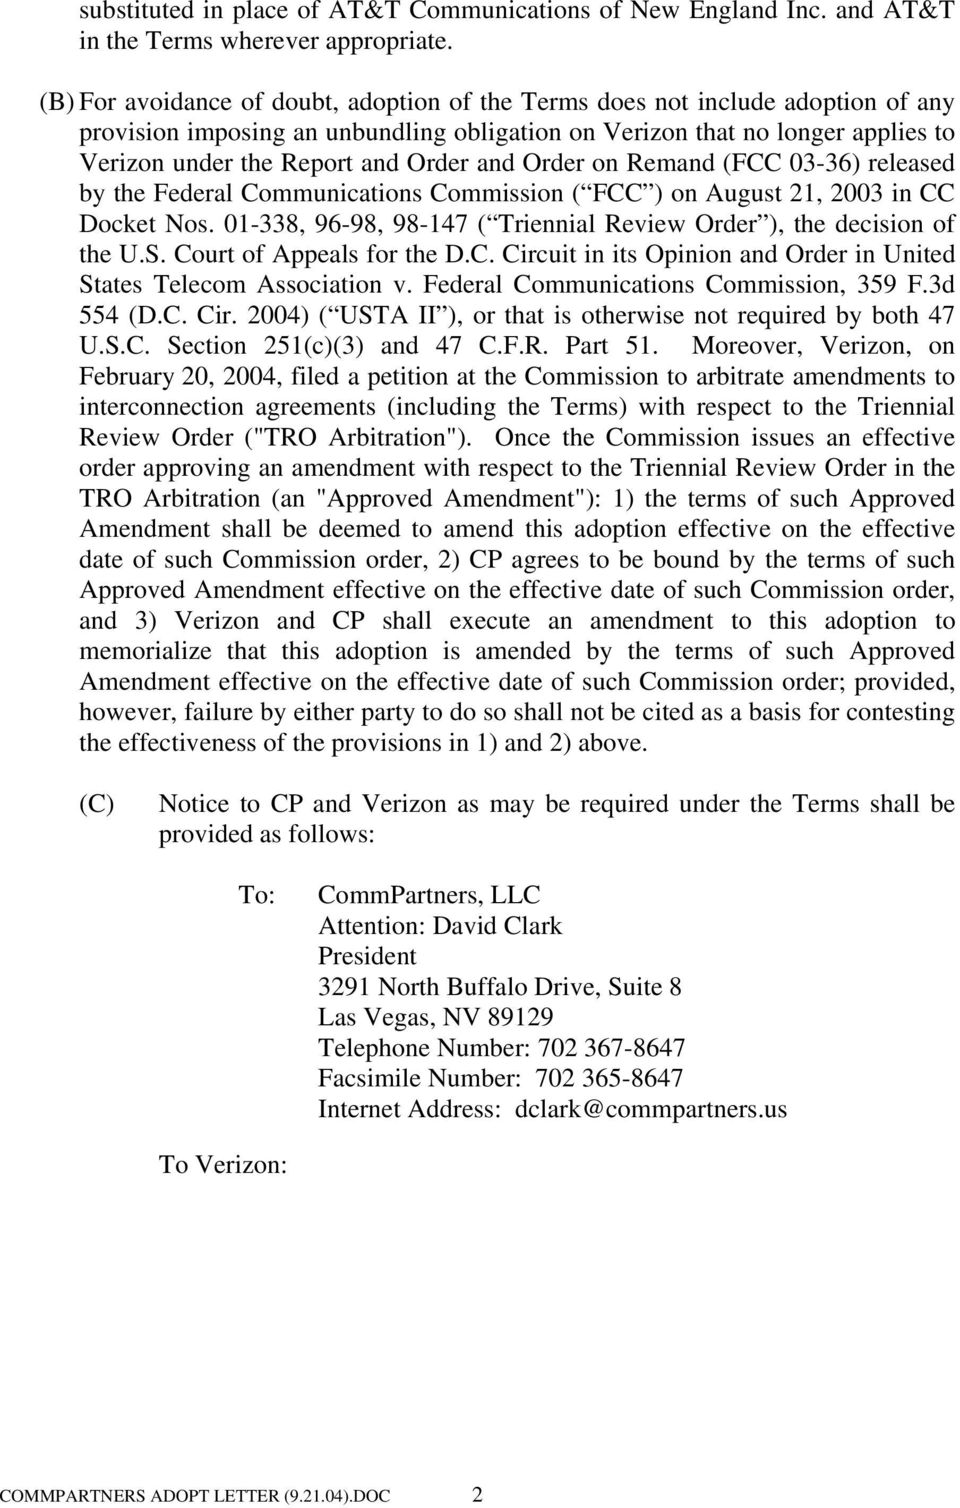 and Order on Remand (FCC 03-36) released by the Federal Communications Commission ( FCC ) on August 21, 2003 in CC Docket Nos. 01-338, 96-98, 98-147 ( Triennial Review Order ), the decision of the U.